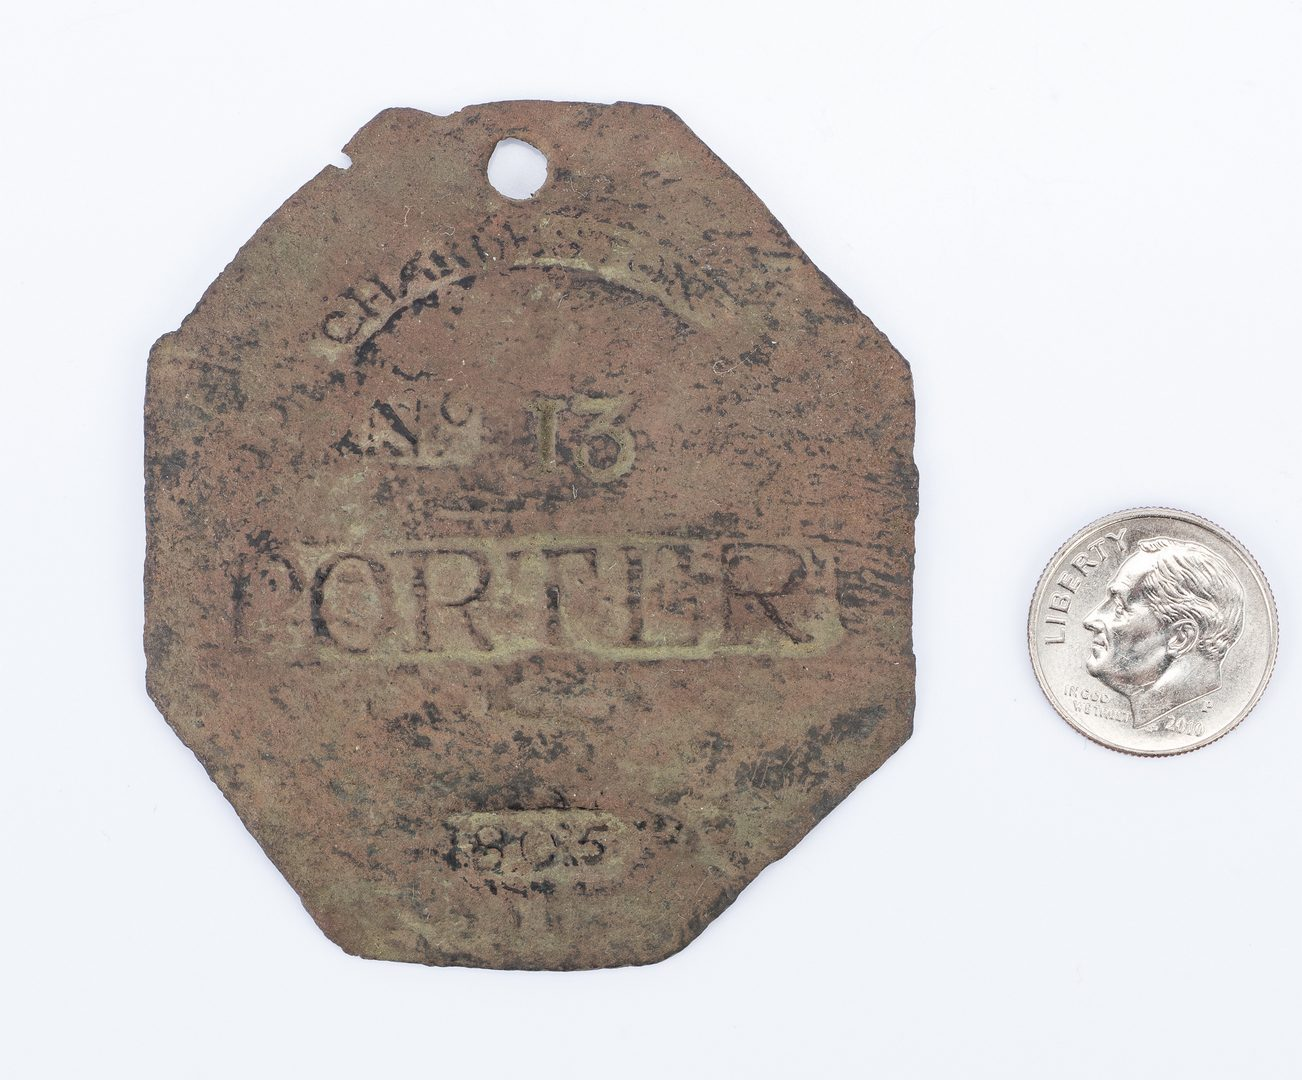 Lot 339: 1805 Charleston C. Prince Porter Slave Hire Badge, Number 13